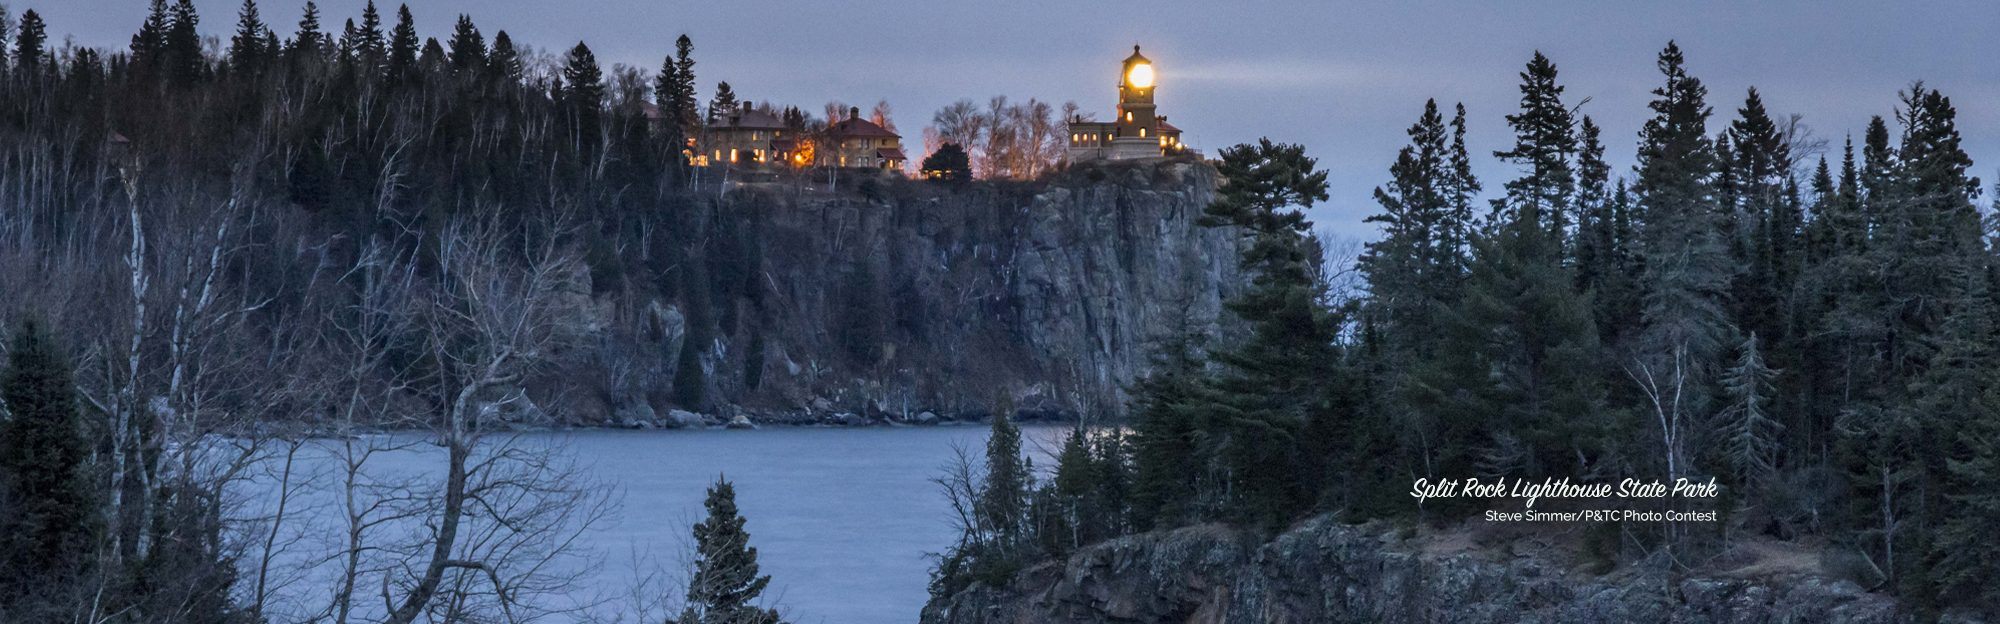 Split Rock Lighthouse shining light over snowy landscape